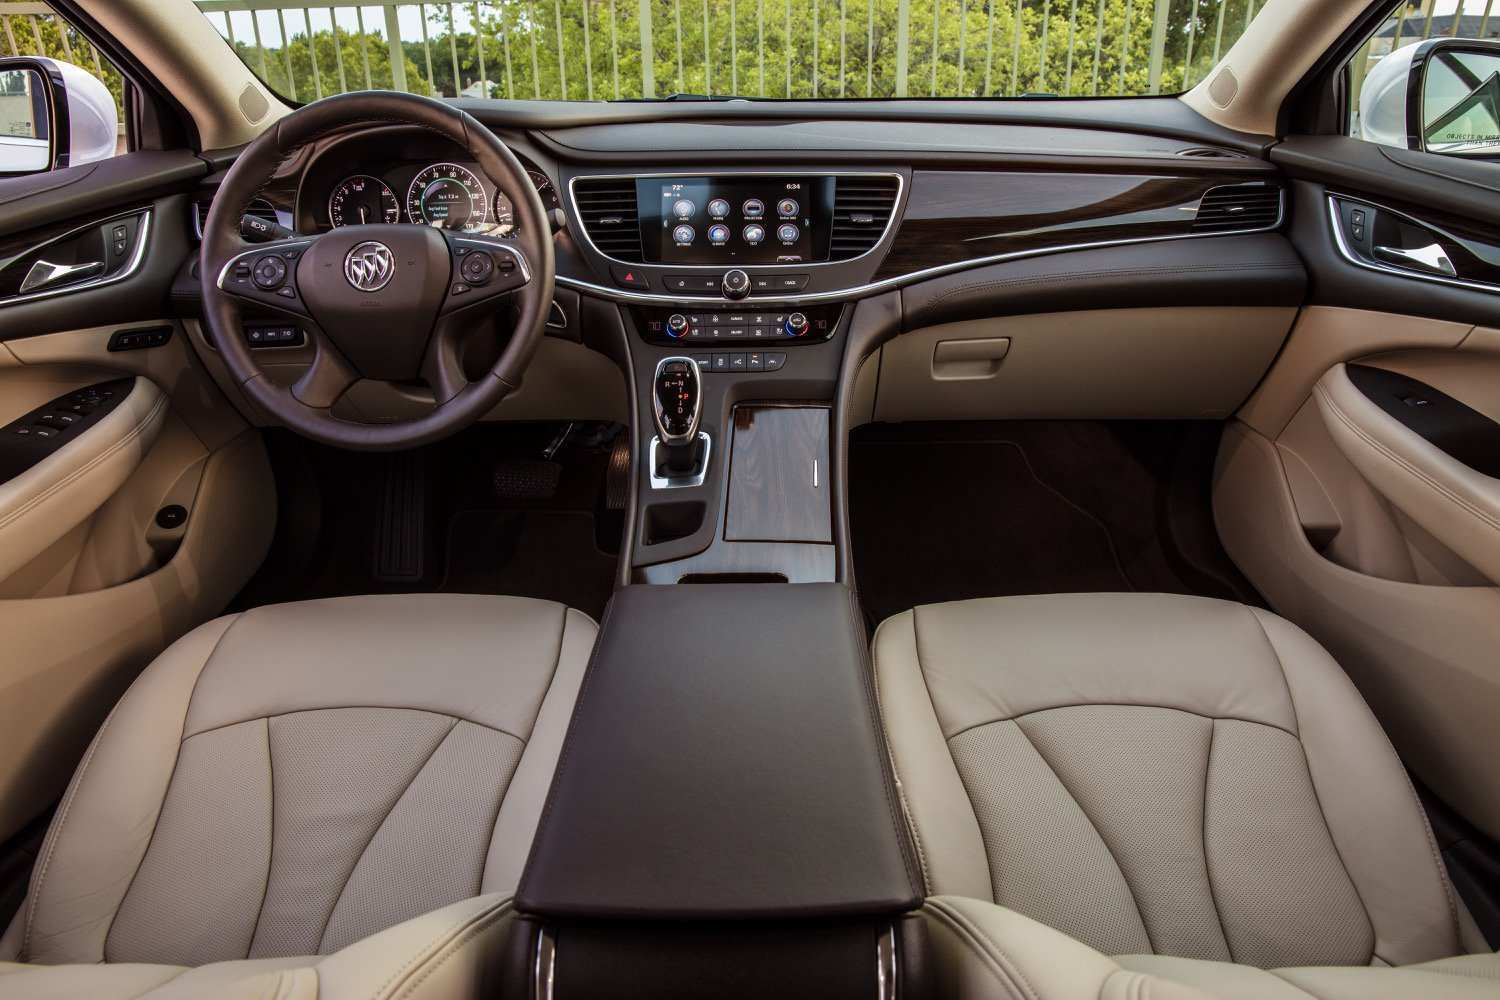 92 New 2020 Buick Enclave Interior Price And Review